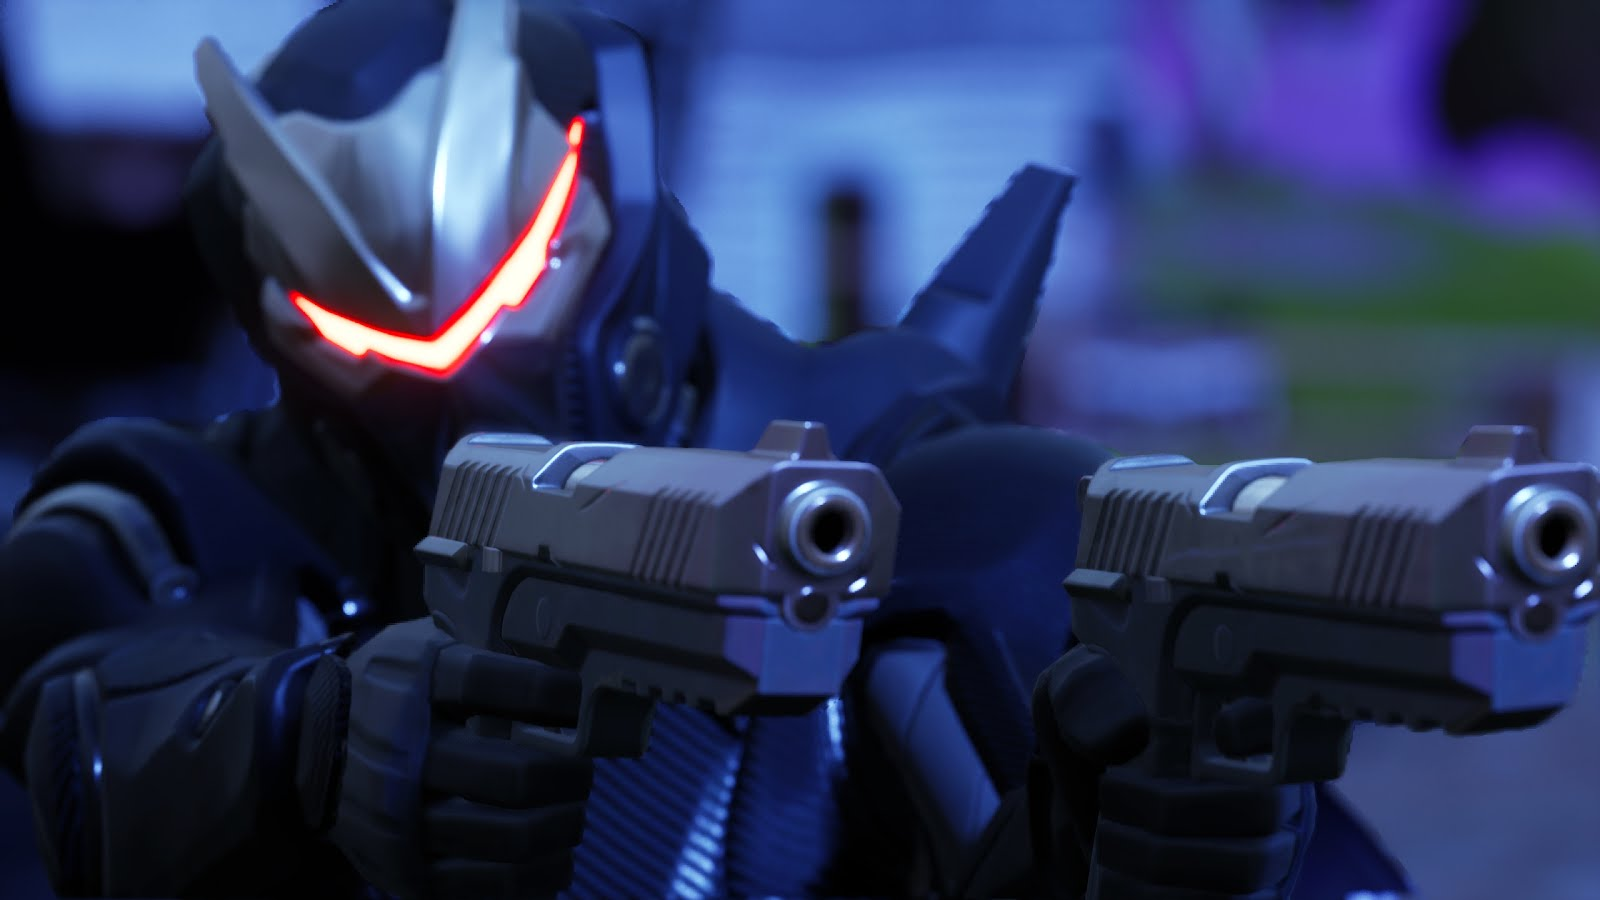 Fortnite Omega Wallpaper Hd 1157098 Hd Wallpaper